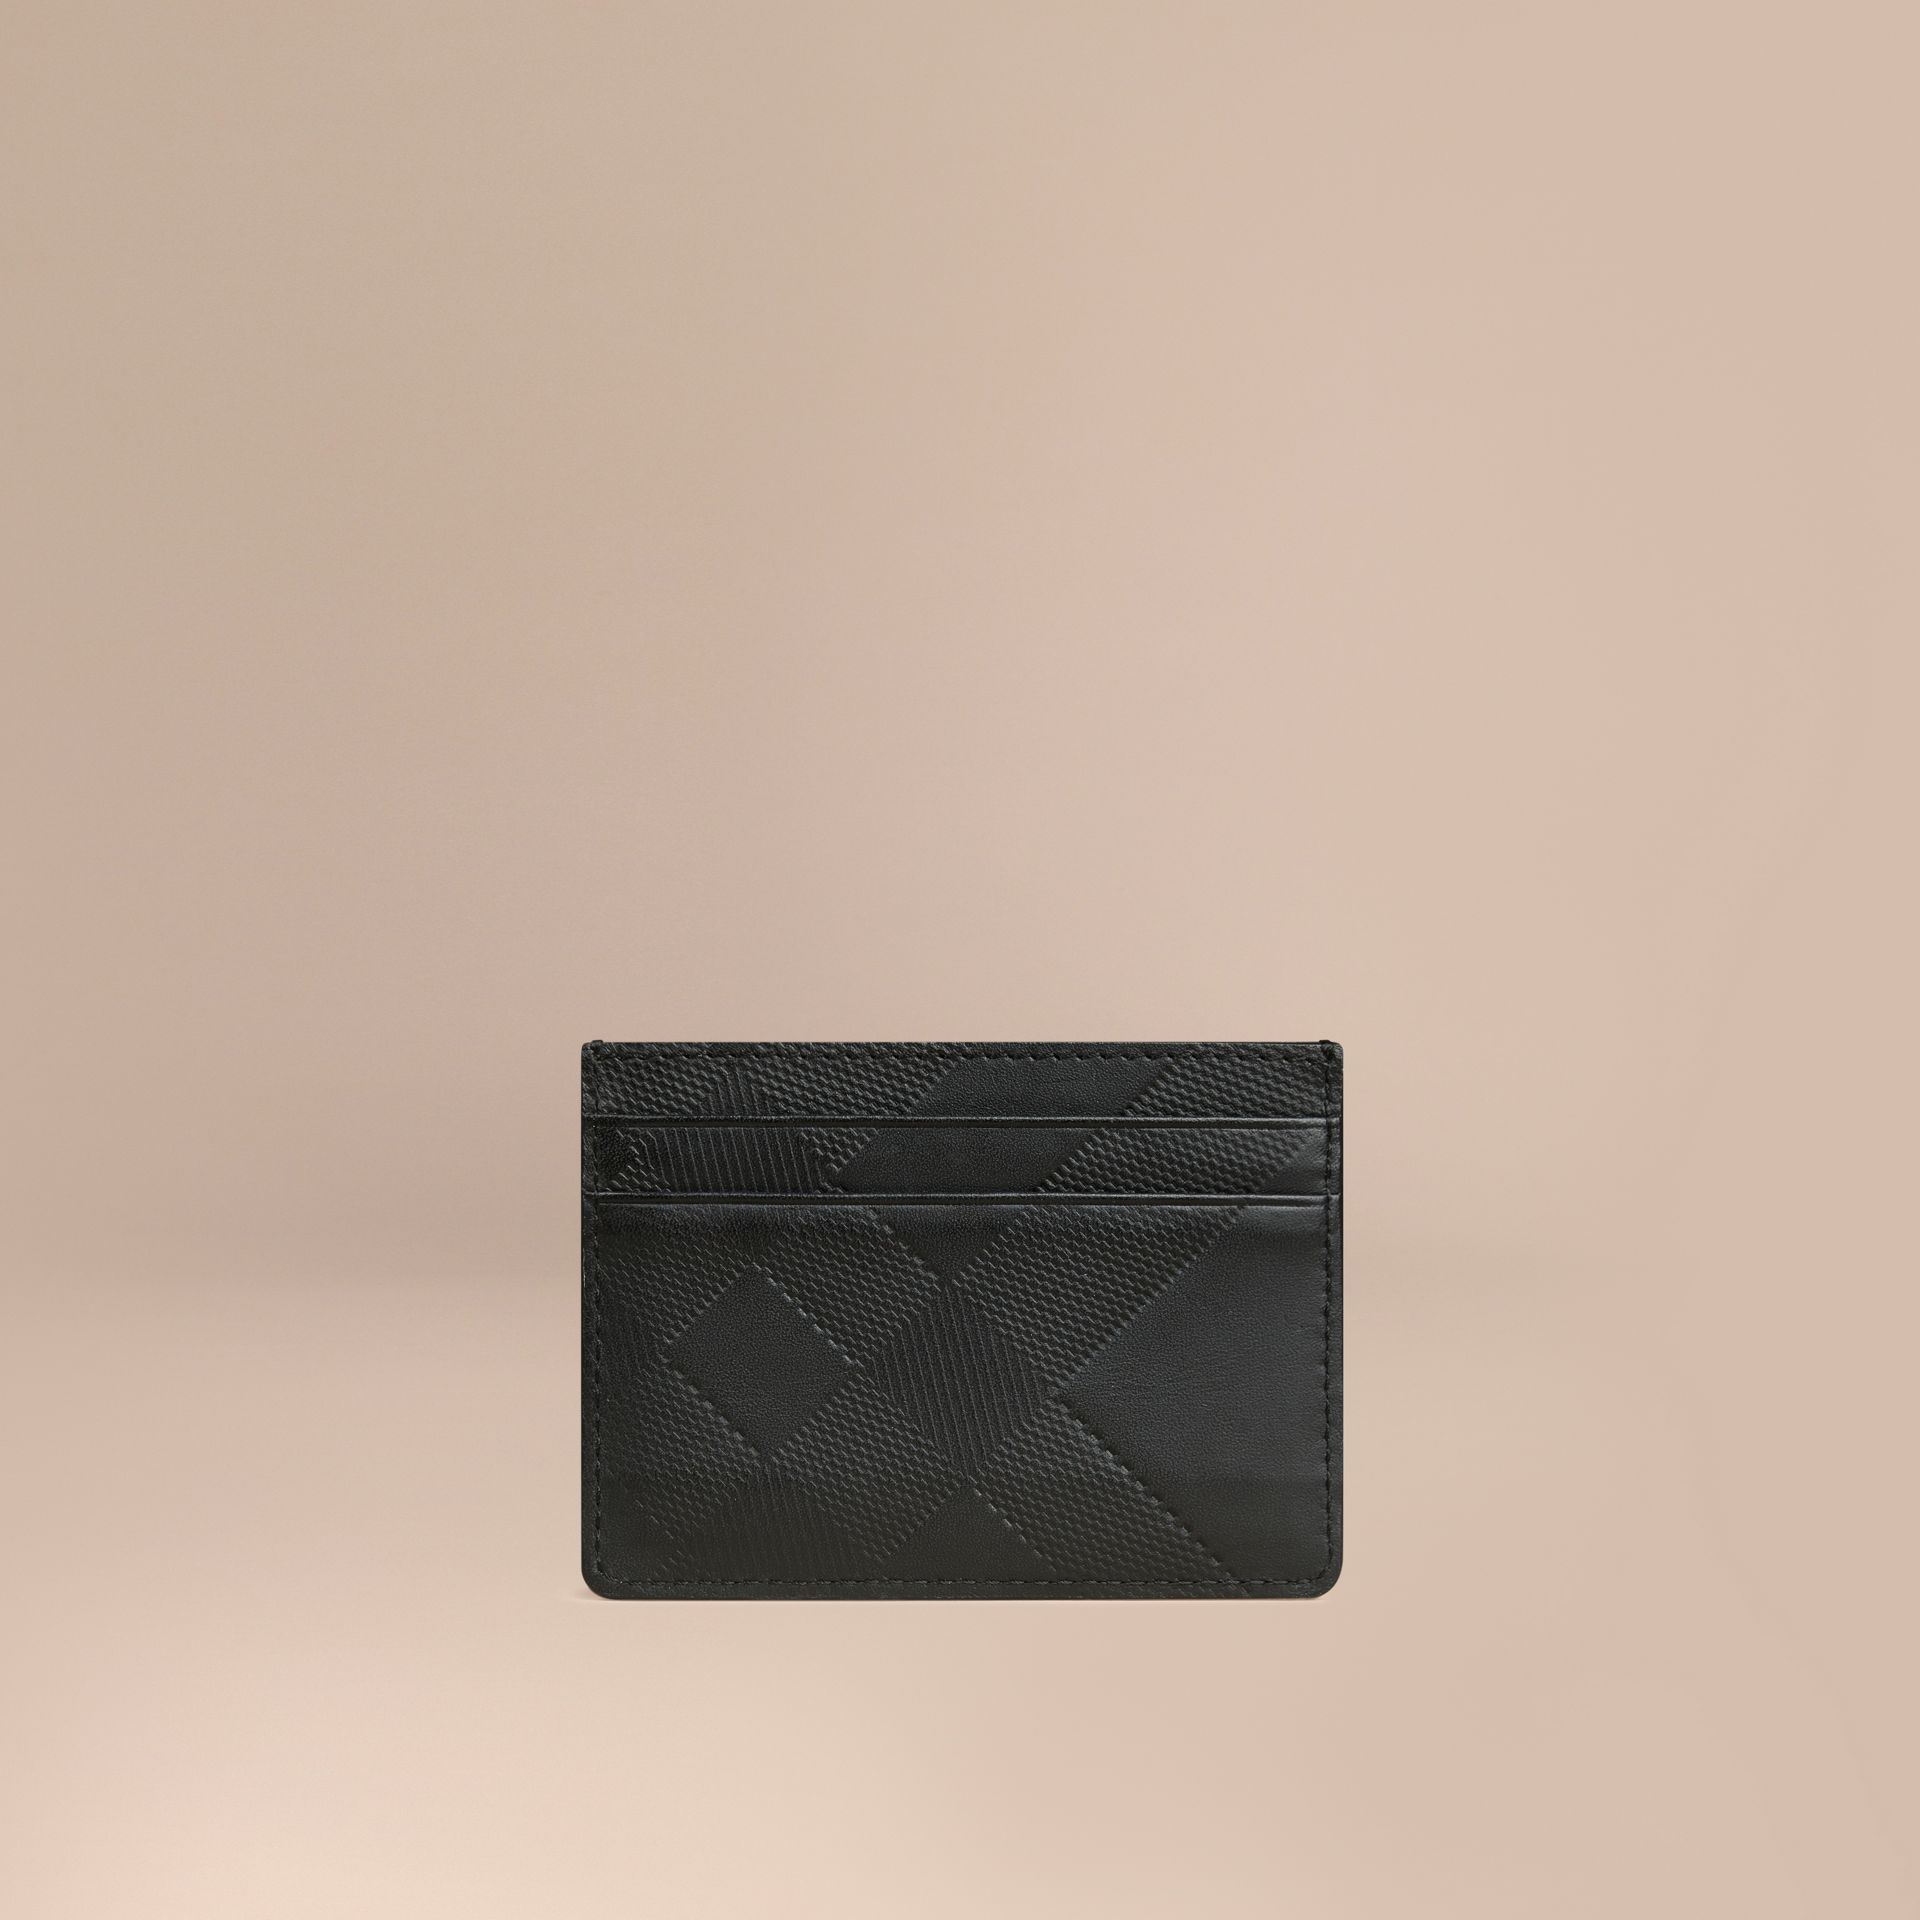 Black Check Embossed Leather Card Case Black - gallery image 1